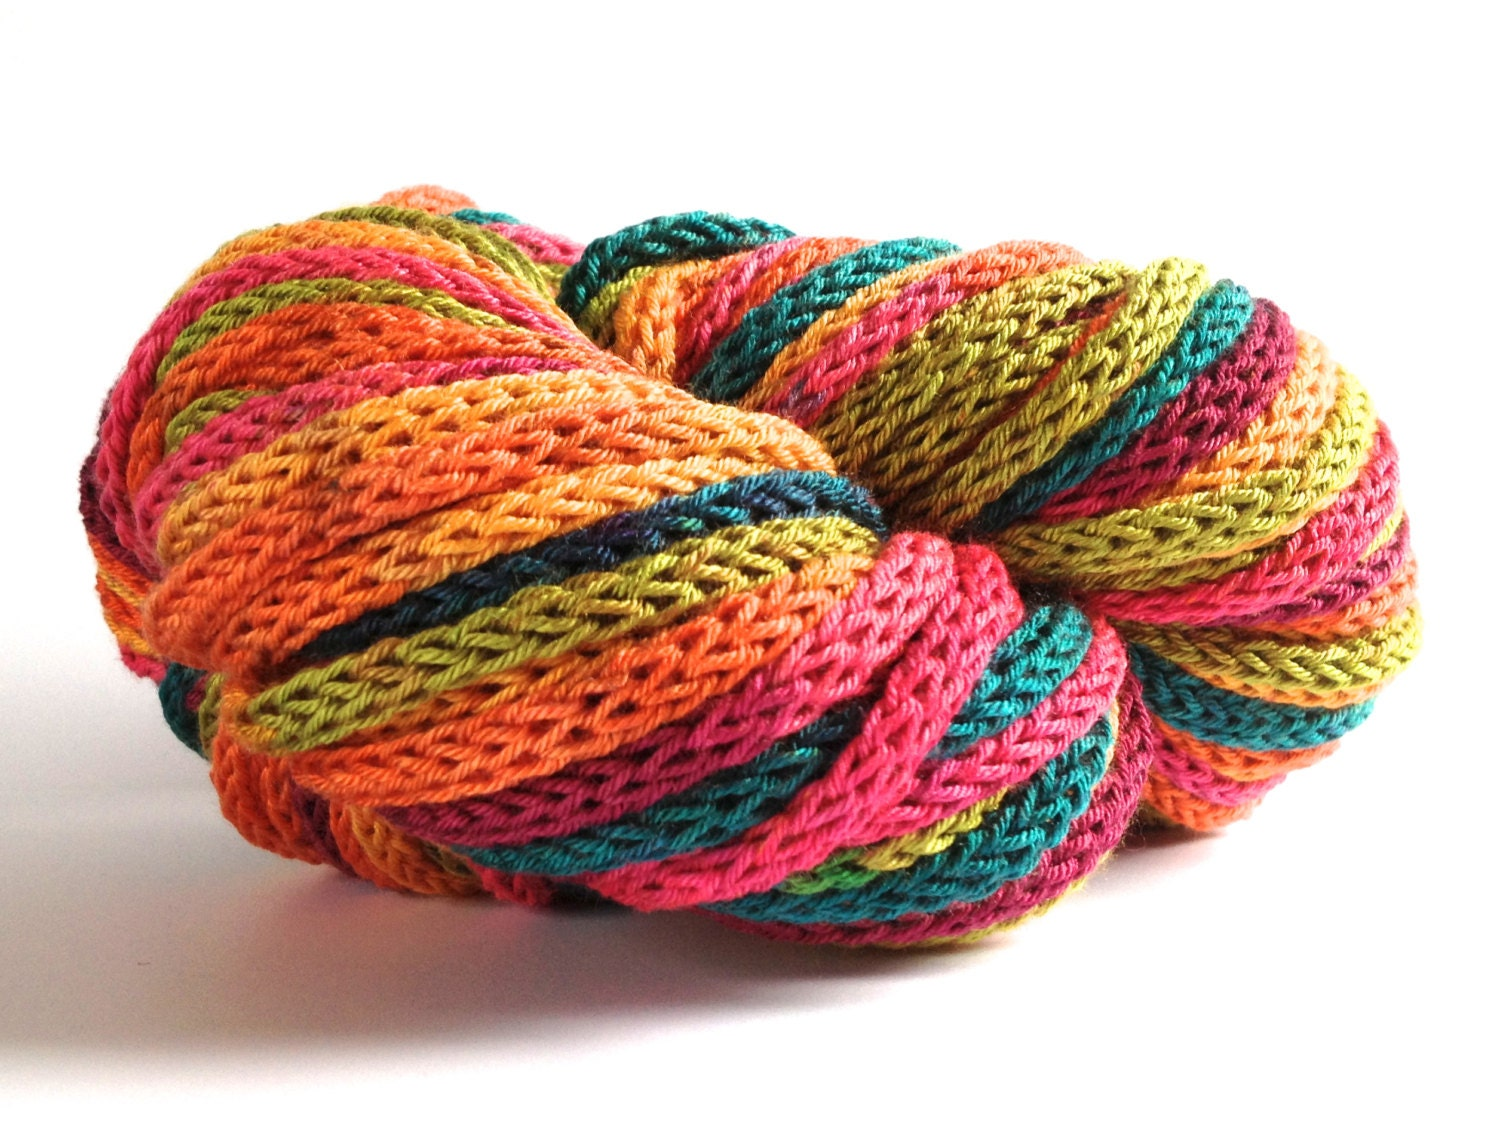 Giant Knitting Needles And Wool Uk : Super bulky knitting yarn giant thread for min size